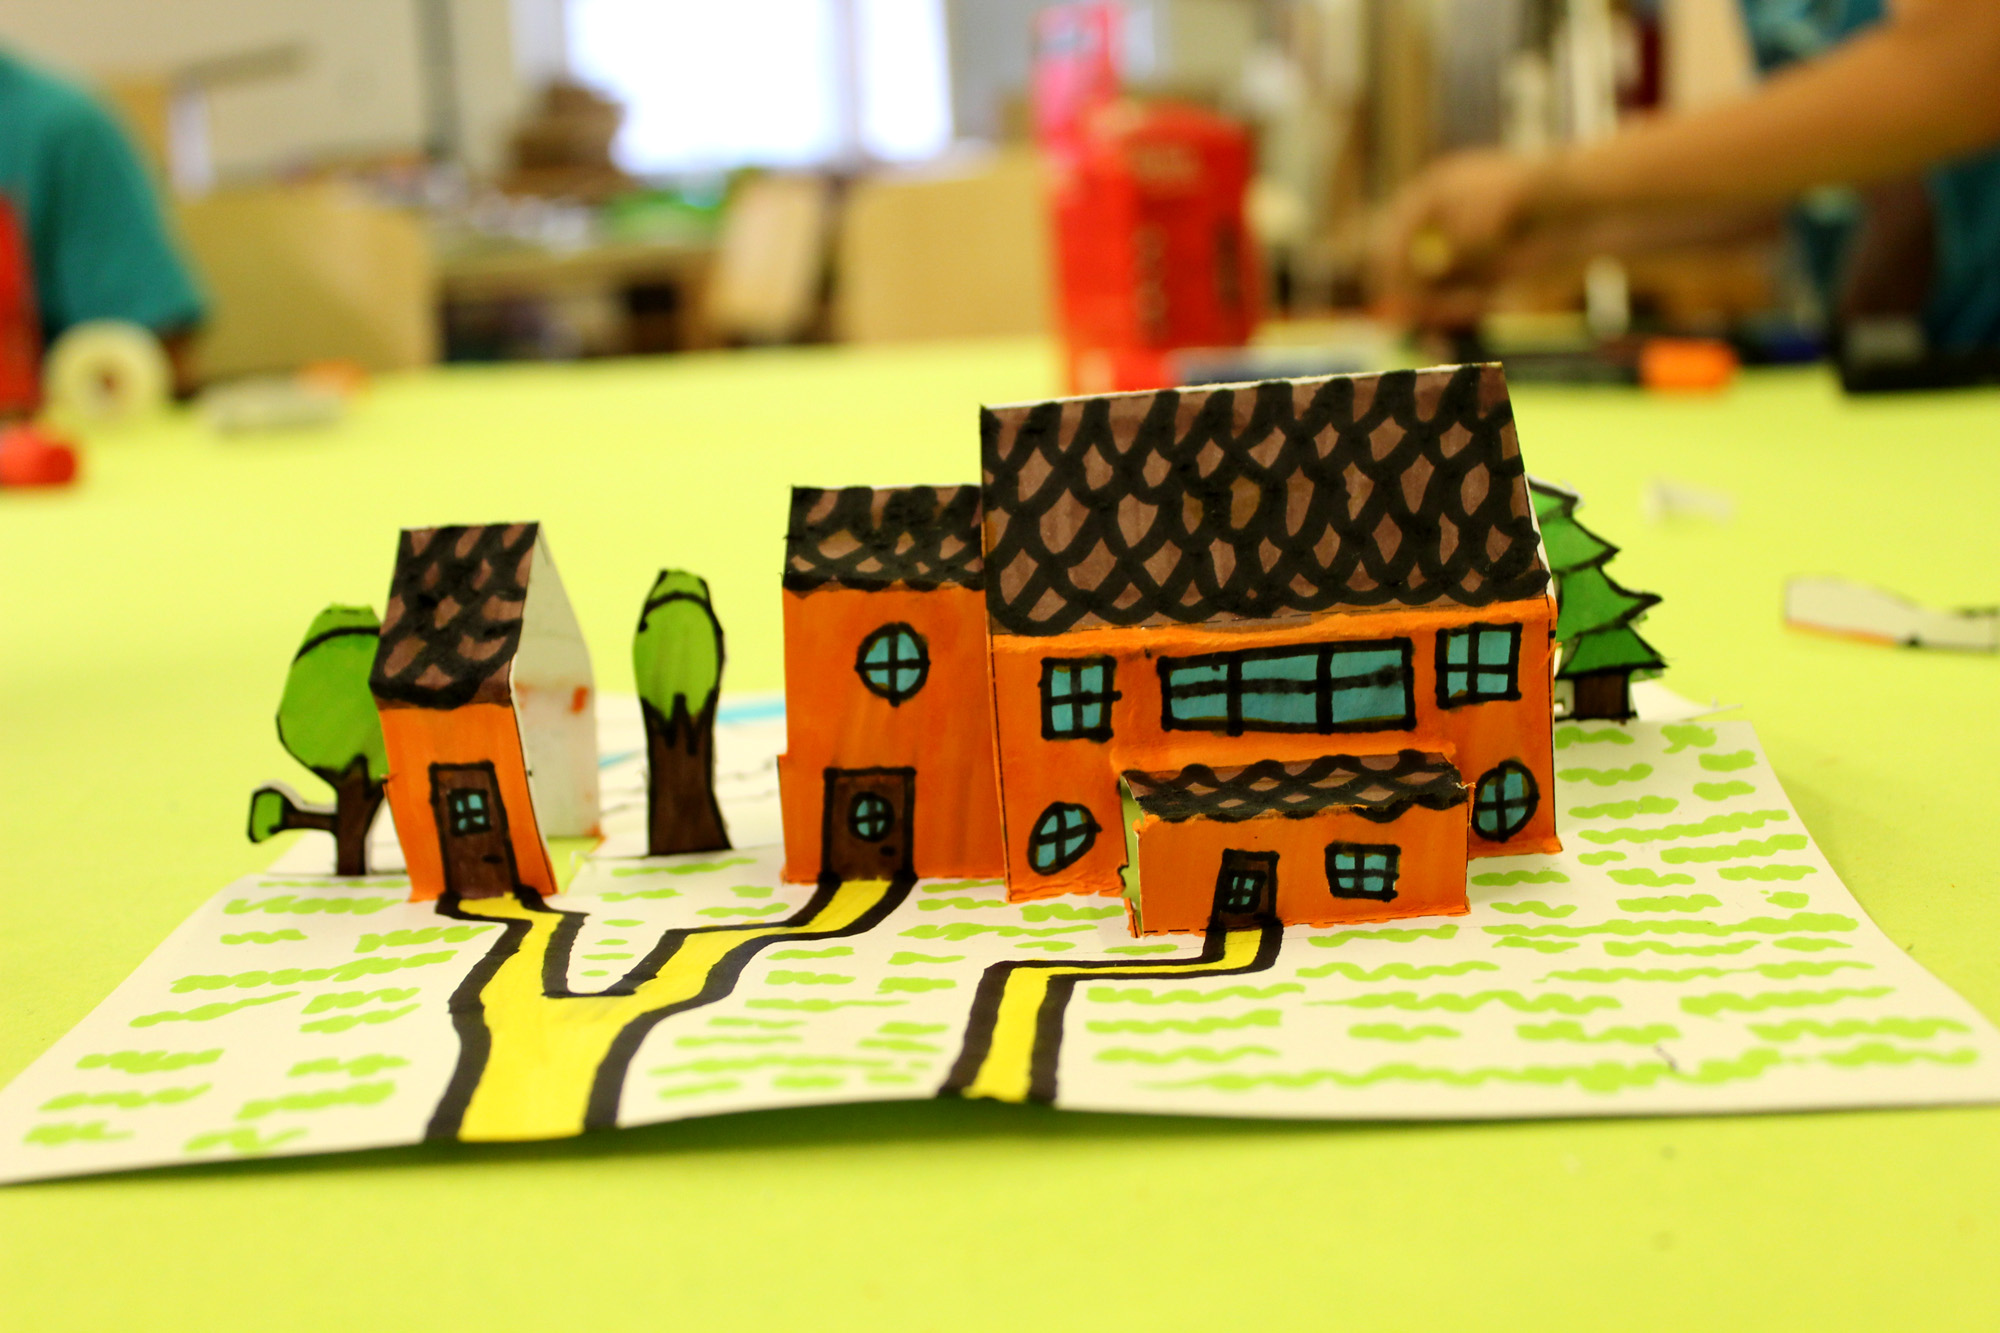 Play, create & succeed with Arkki@home projects!